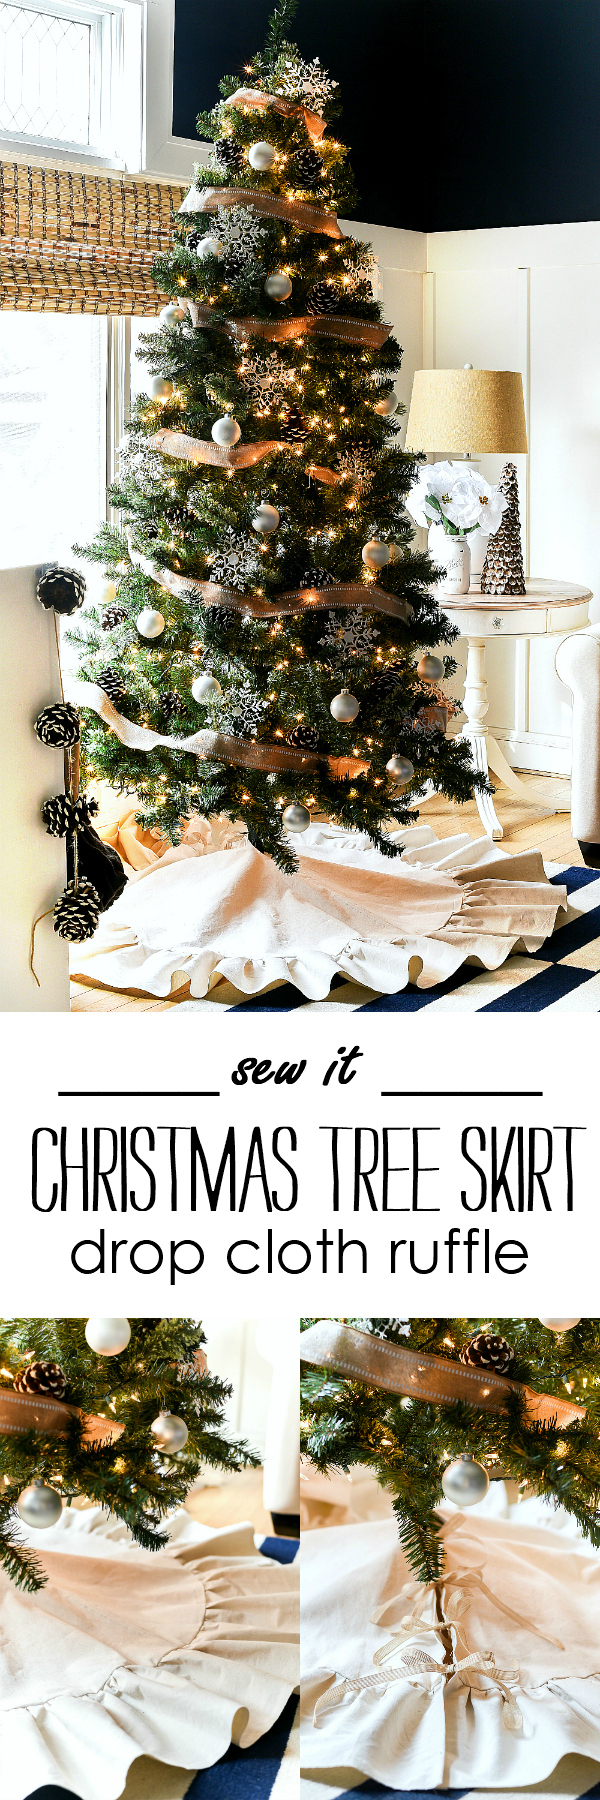 Drop Cloth Ruffle Christmas Tree Skirt - Easy Christmas Tree Skirt DIY - How To Make a Christmas Tree Skirt from Drop Cloth